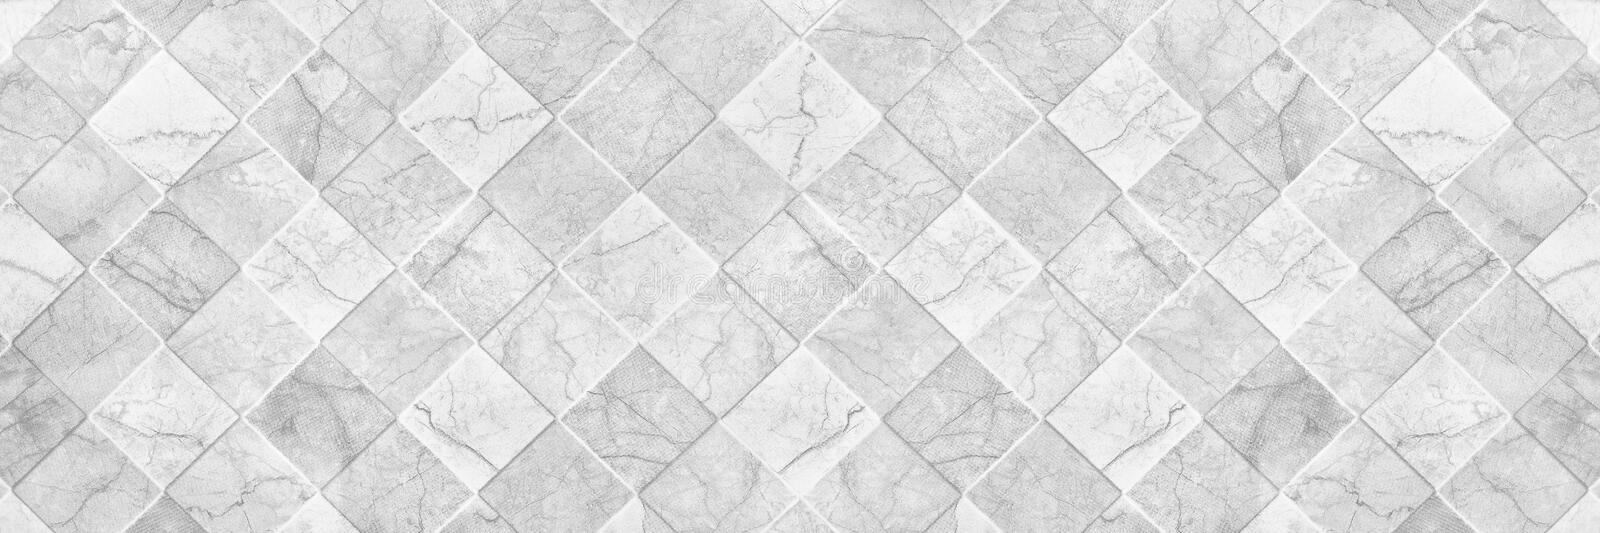 horizontal elegant white ceramic tile texture for pattern and ba royalty free stock photography